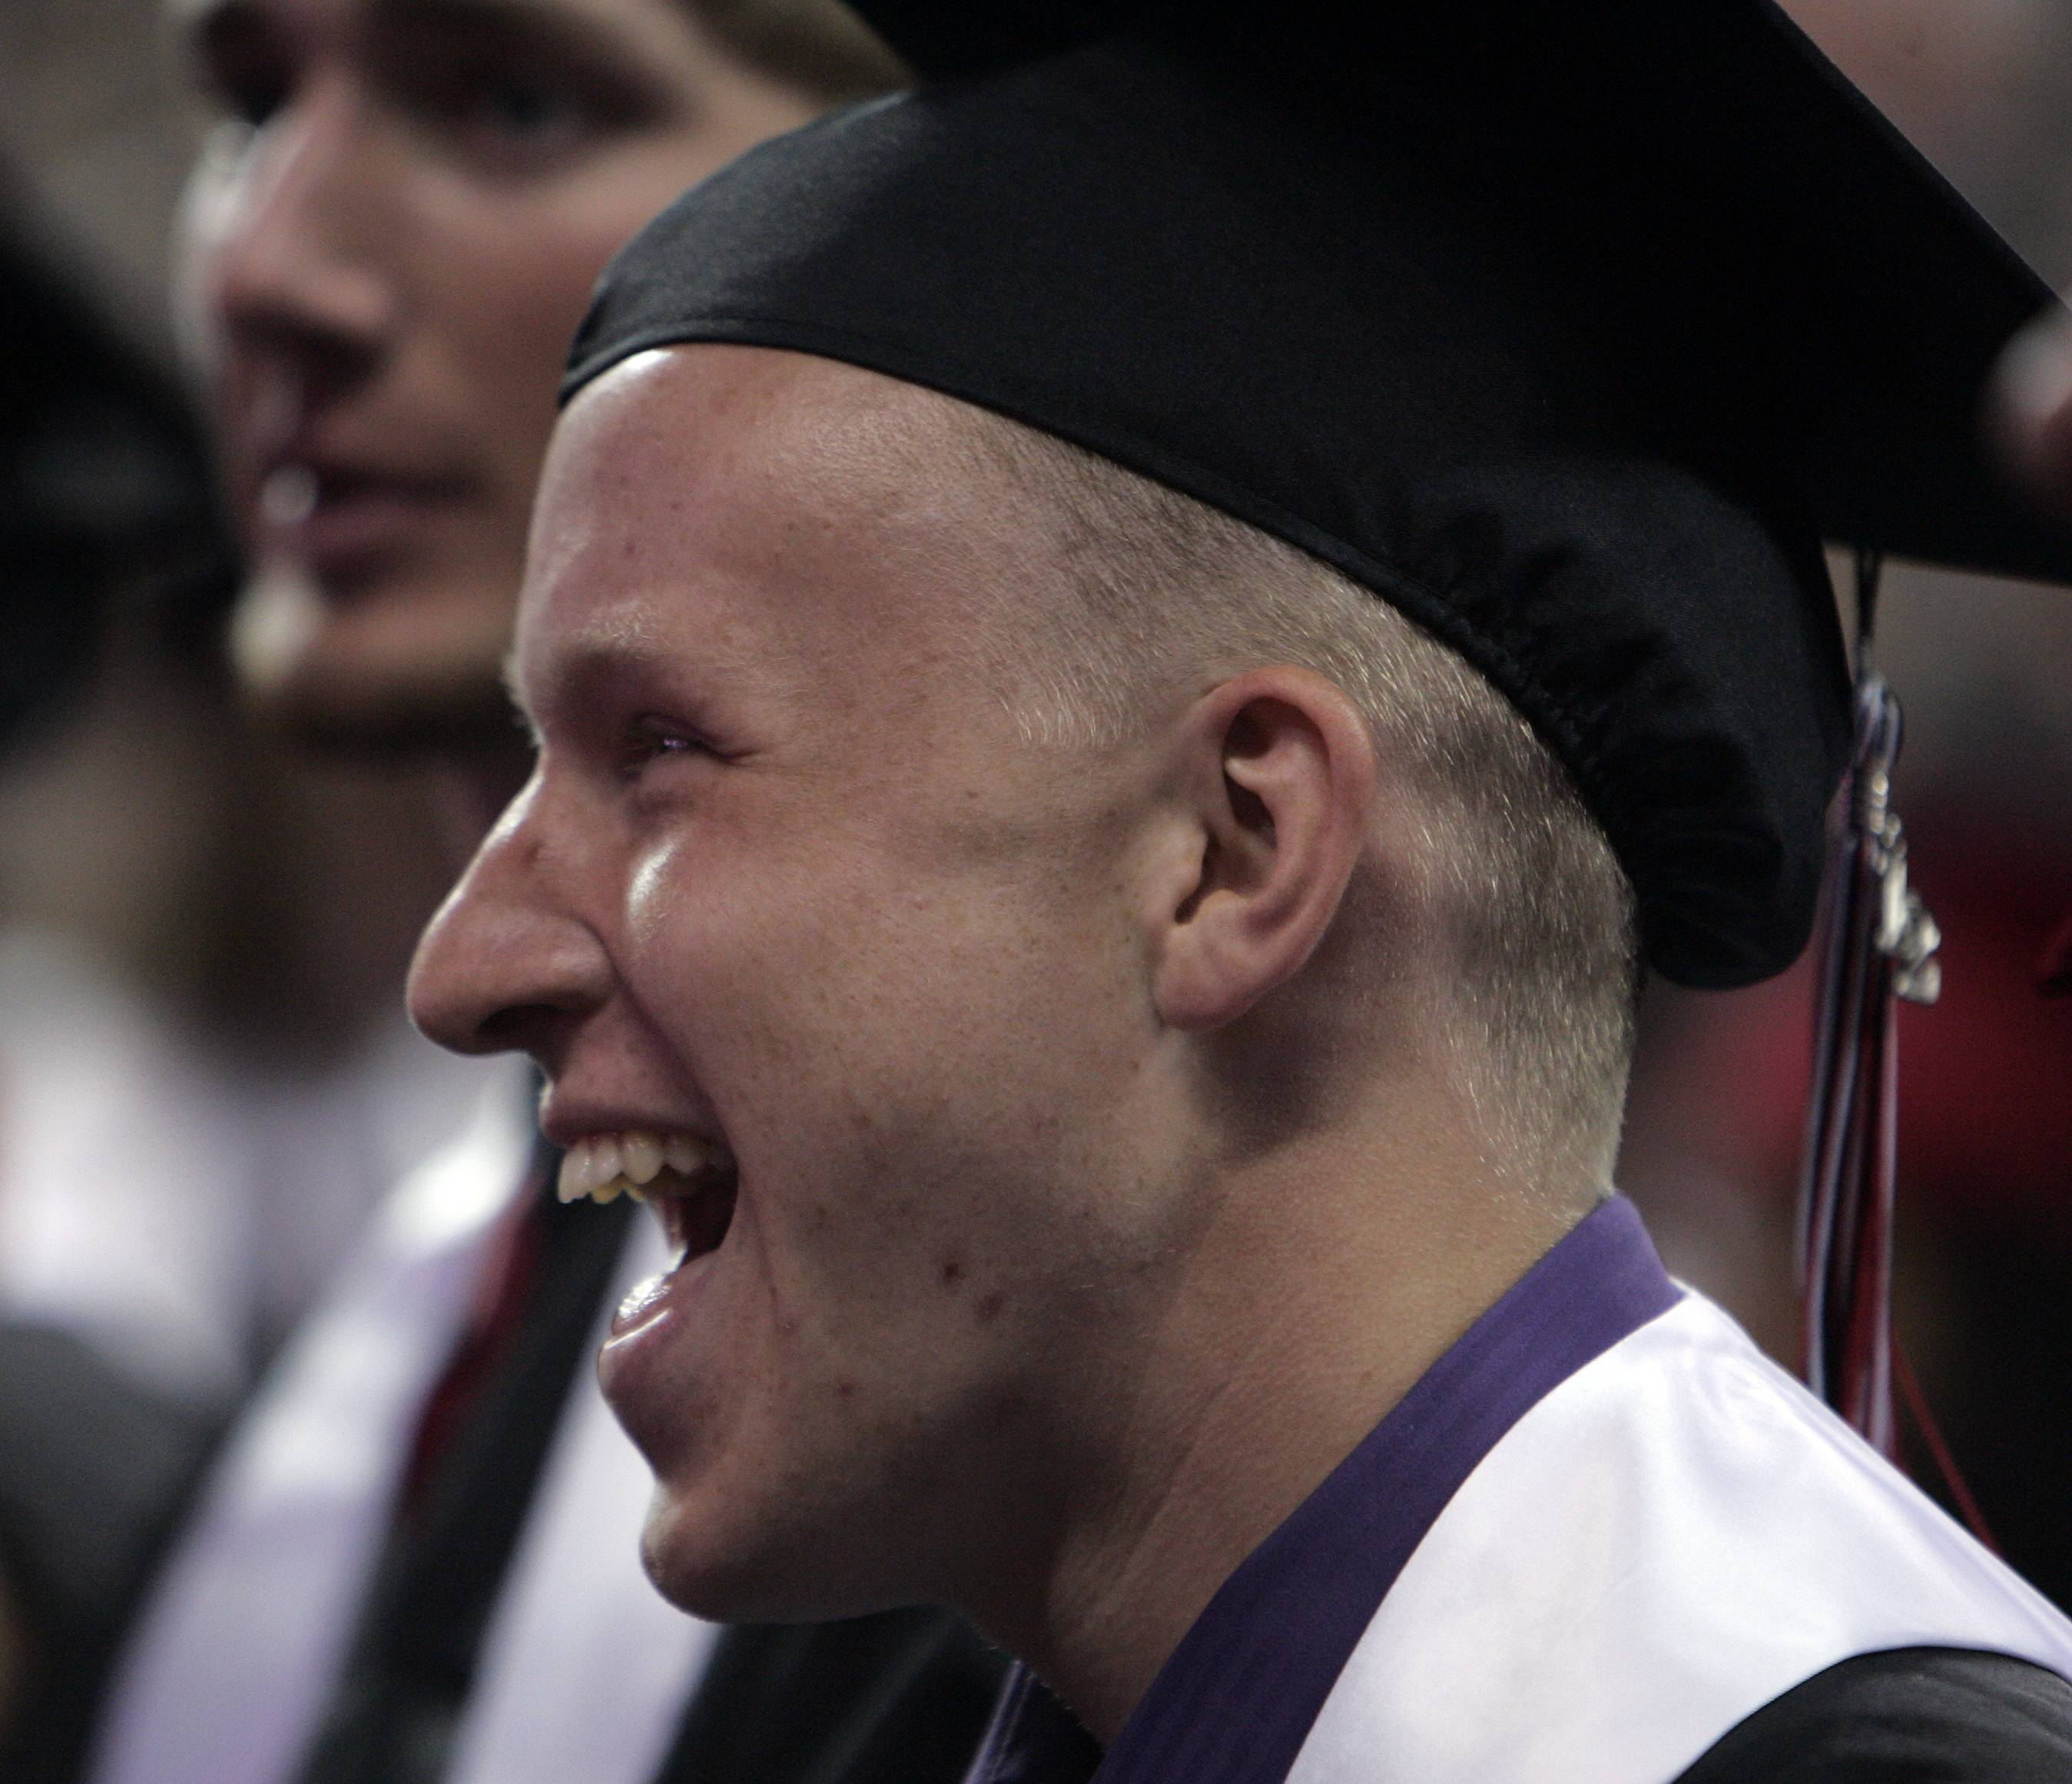 Images from the Huntley High School graduation ceremony at the Sears Centre in Hoffman Estates Saturday, June 2, 2012